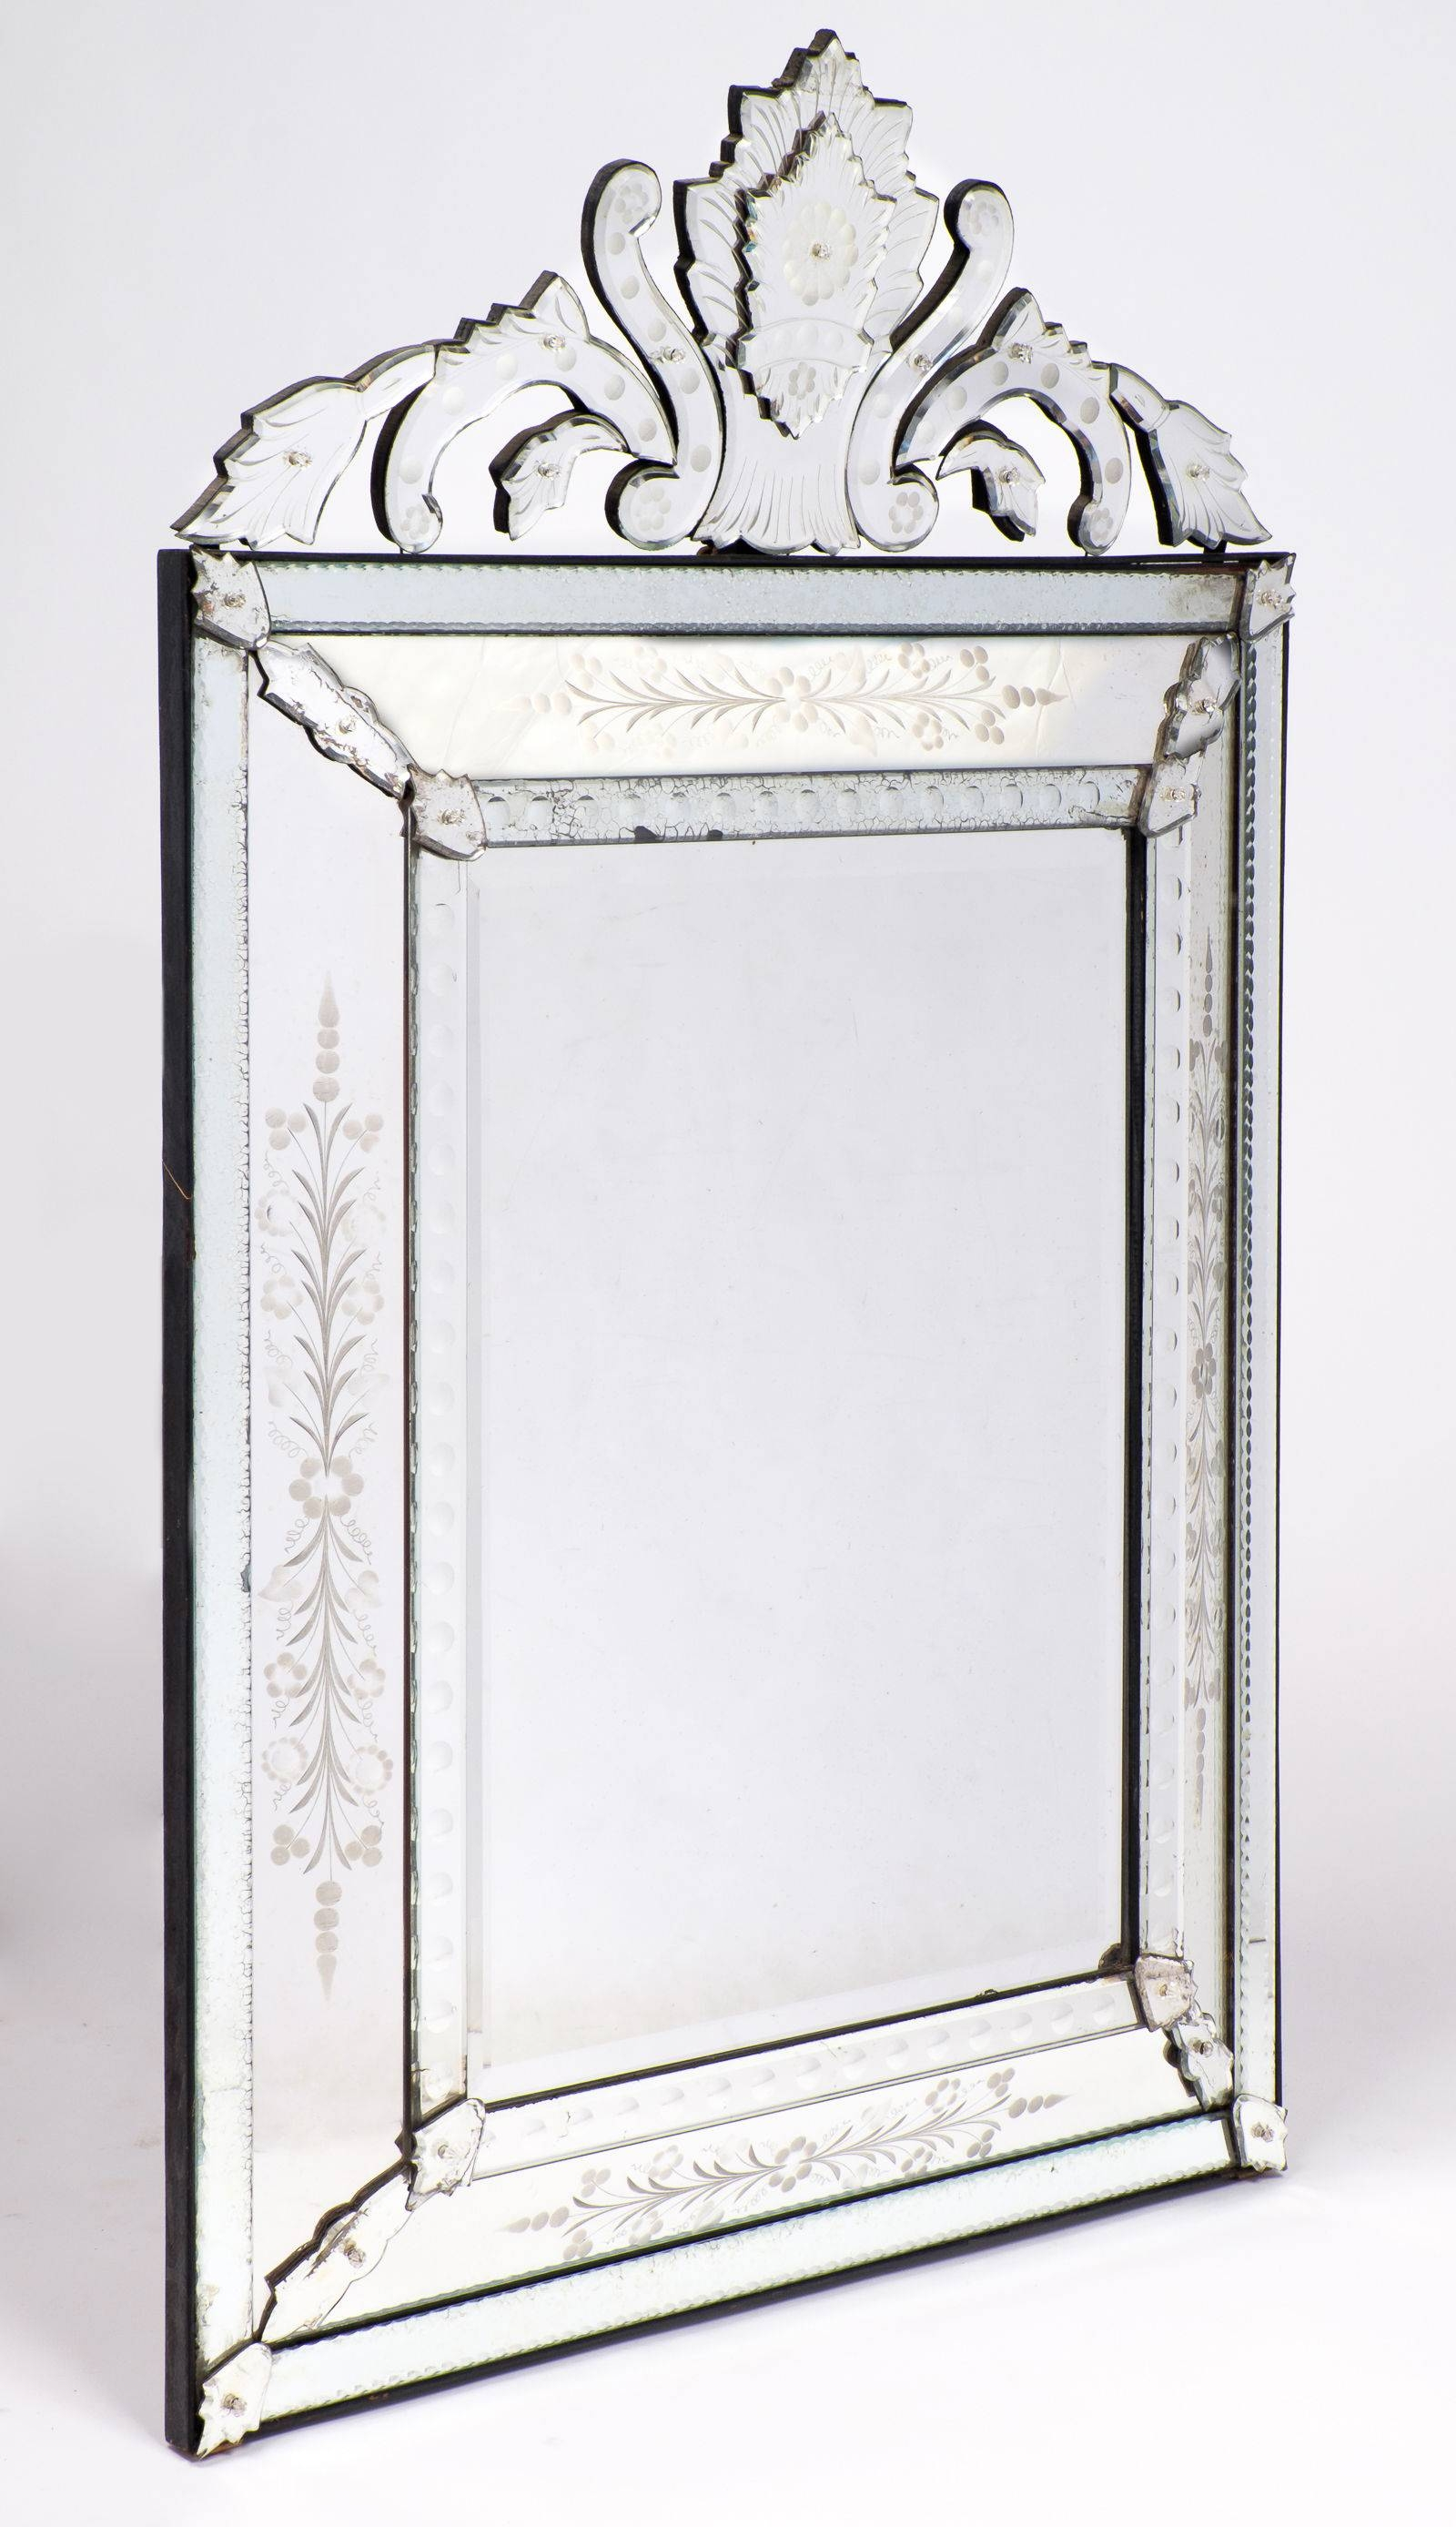 Antique Venetian Glass Mantel Mirror - Jean Marc Fray for Antique Venetian Glass Mirrors (Image 4 of 25)